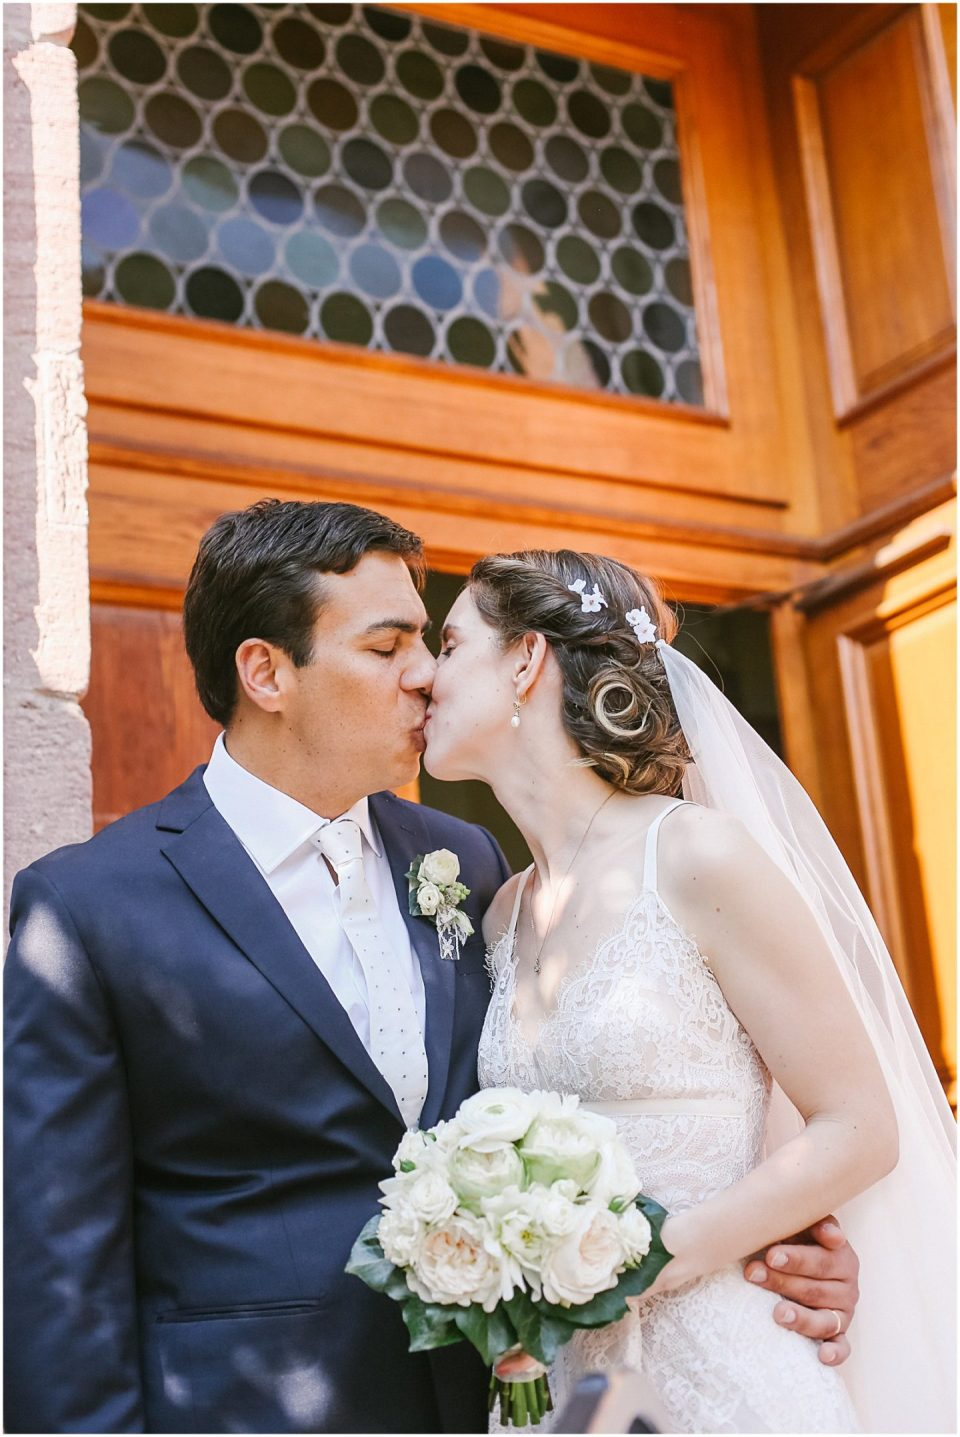 Wedding at Wattwiller Church Alsace France vineyards photographed by Helena Woods